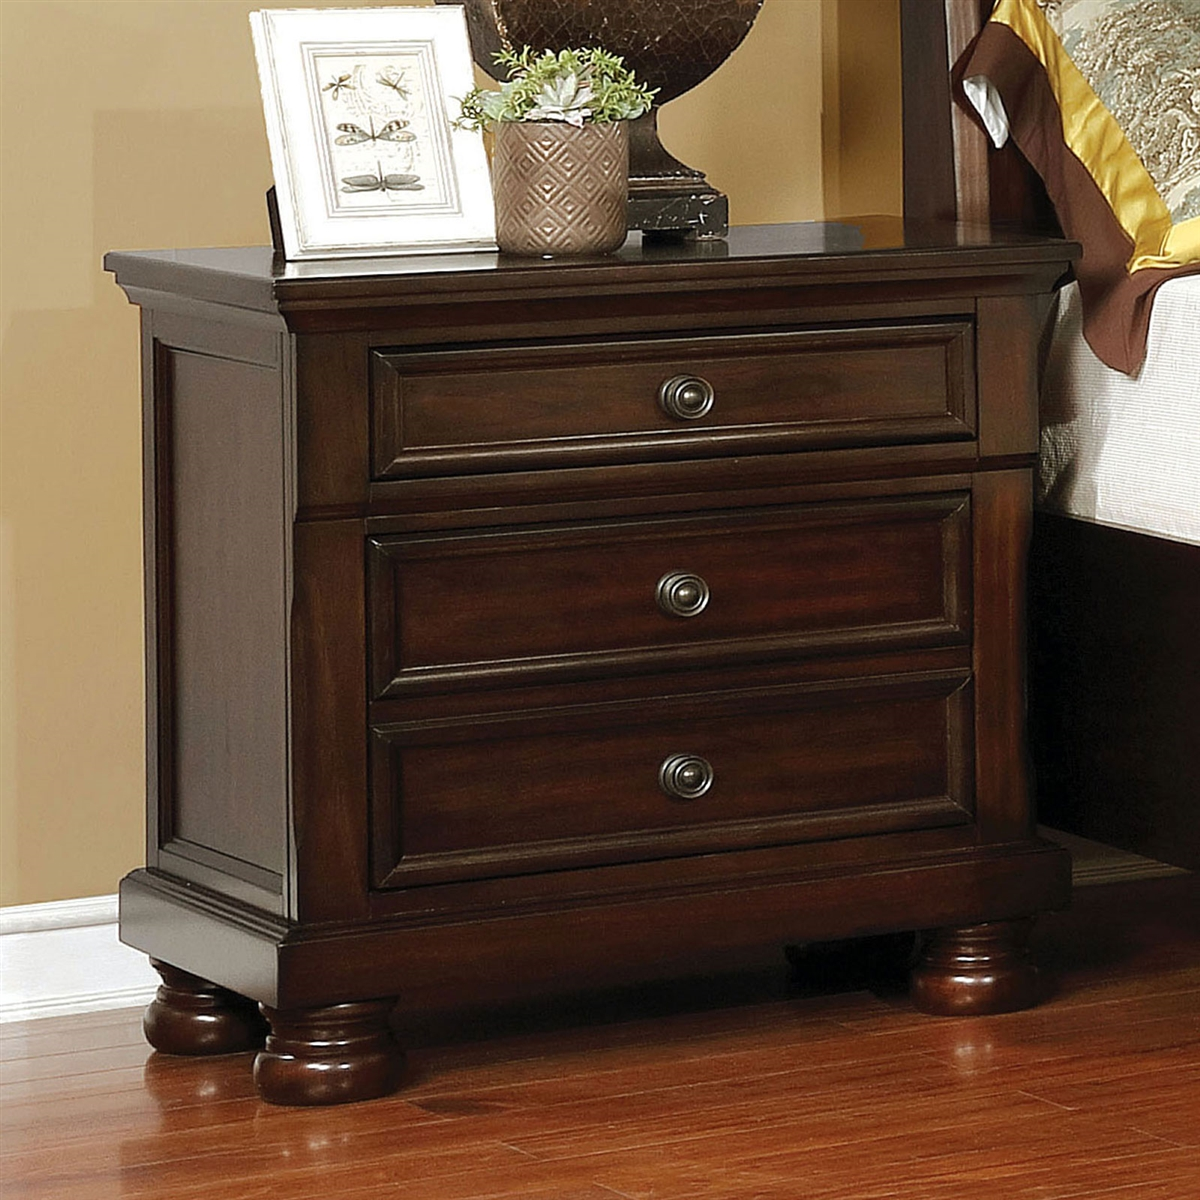 castor collection brown cherry nightstand with hidden drawer